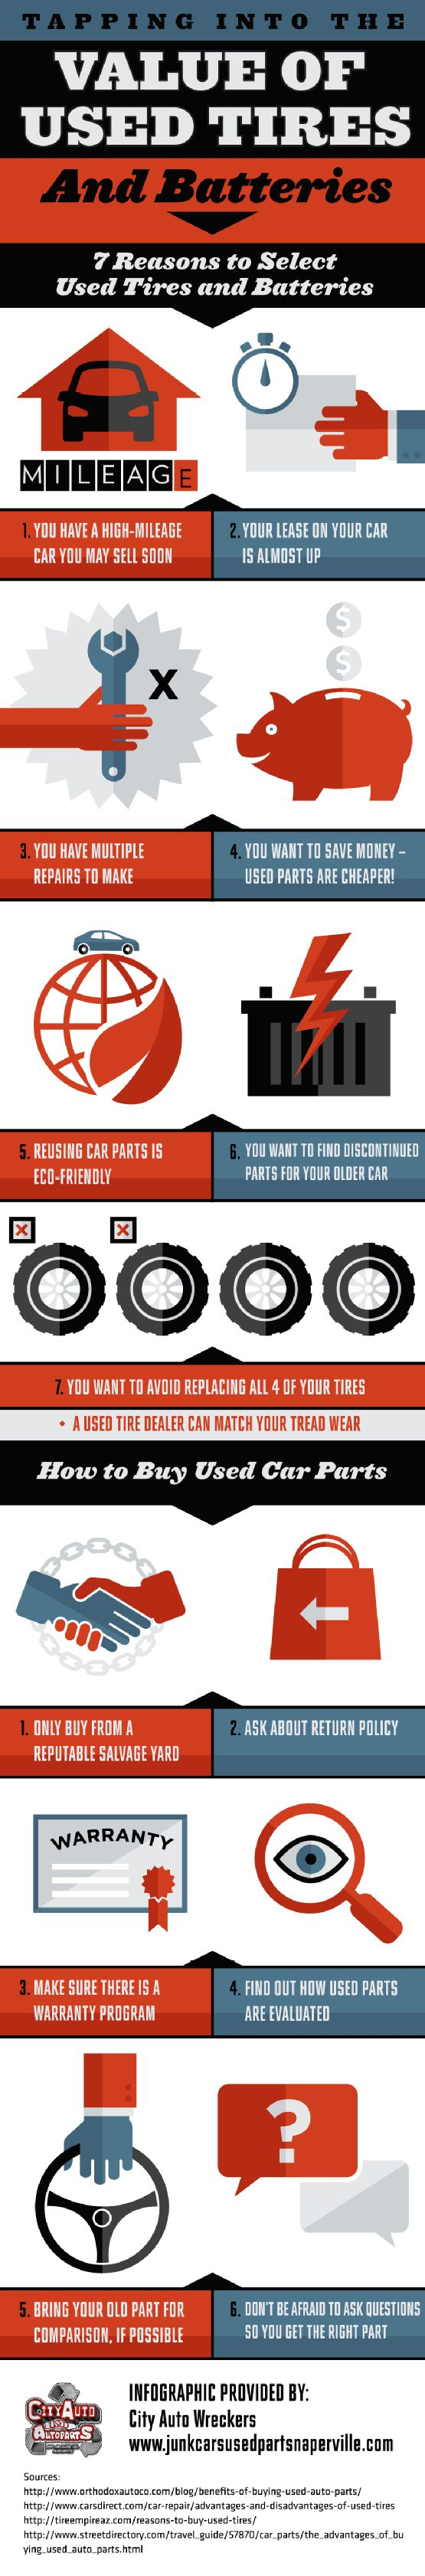 What are some Nissan auto parts that can be salvaged?